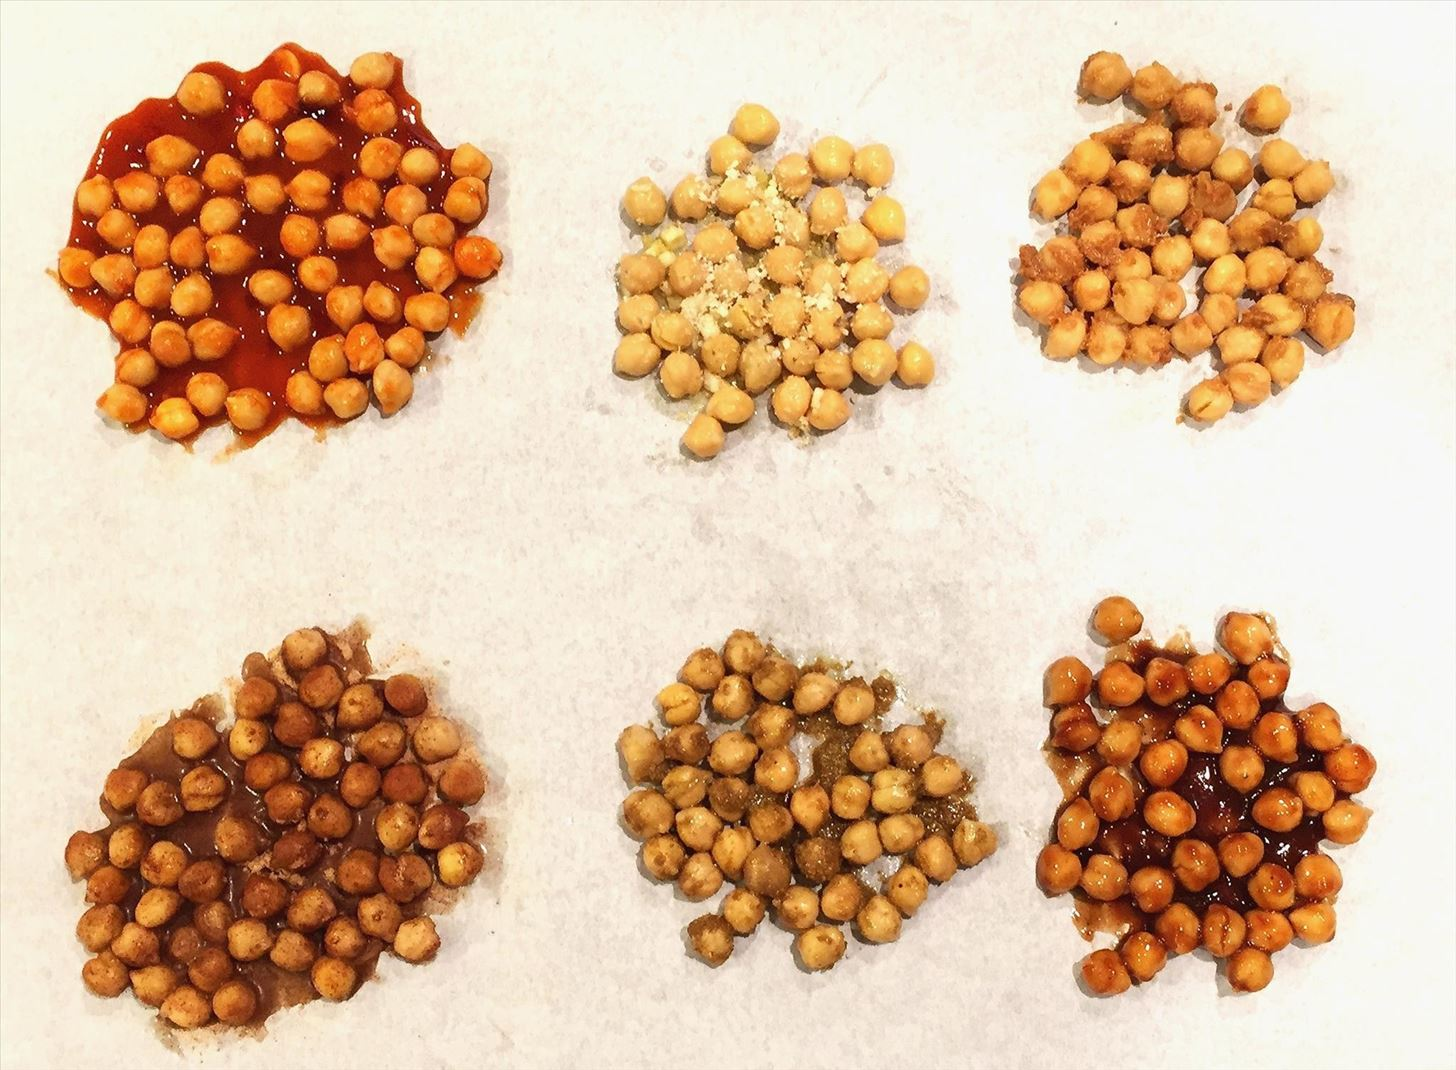 These 6 Flavors Turn Crunchy Chickpeas into Snacking Gold